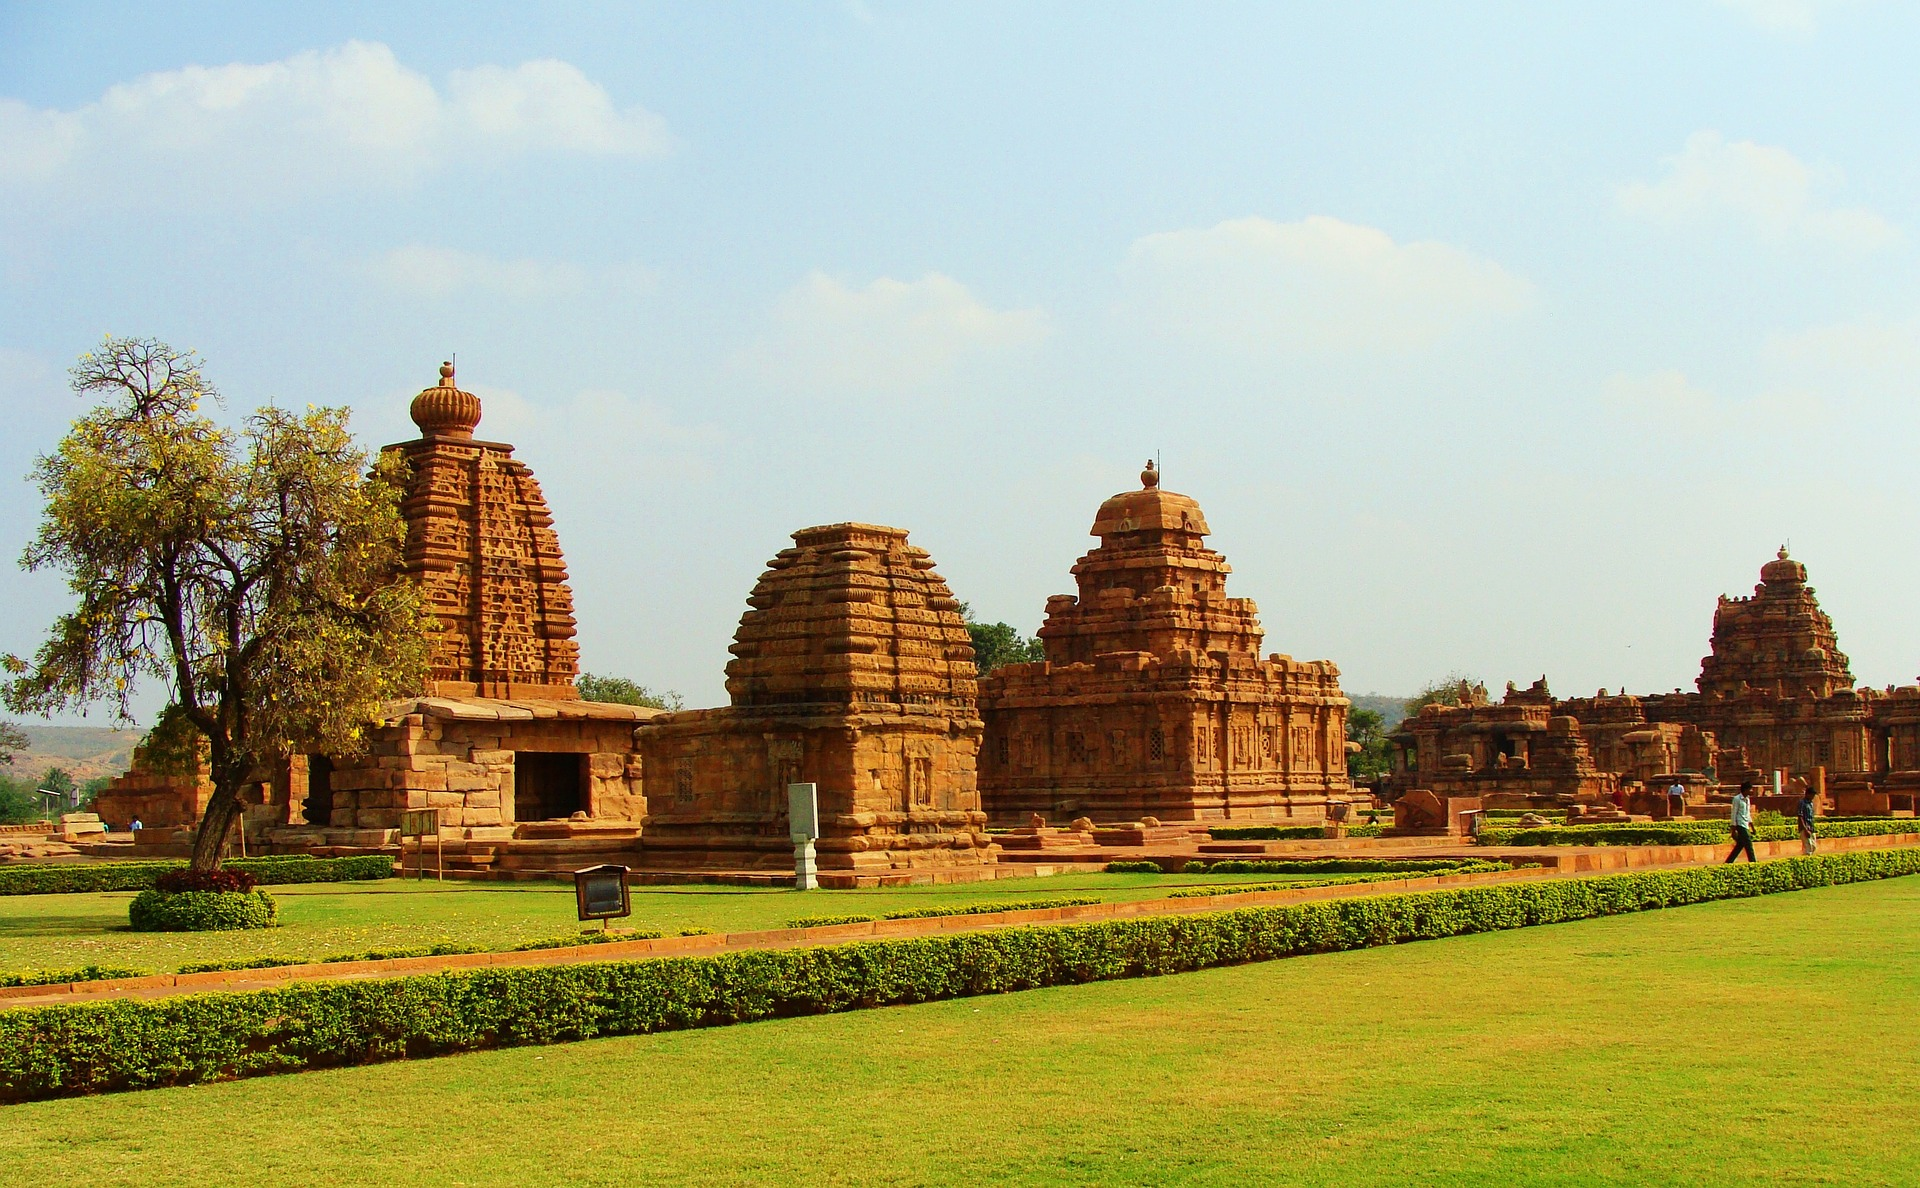 https://pixabay.com/en/pattadakal-monuments-unesco-site-172207/